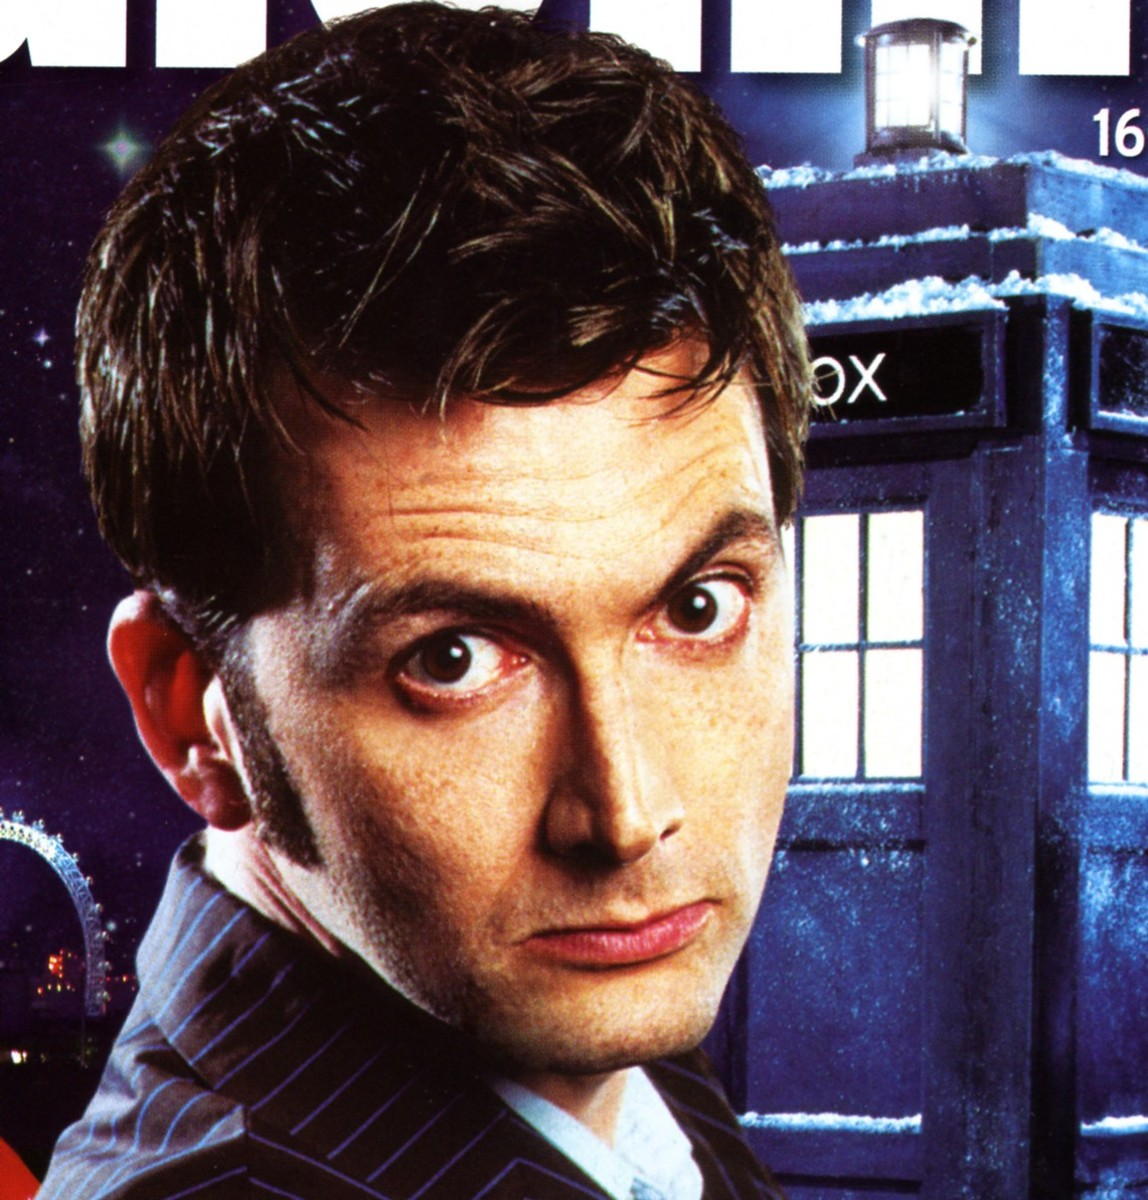 David Tennant - The best Dr Who?